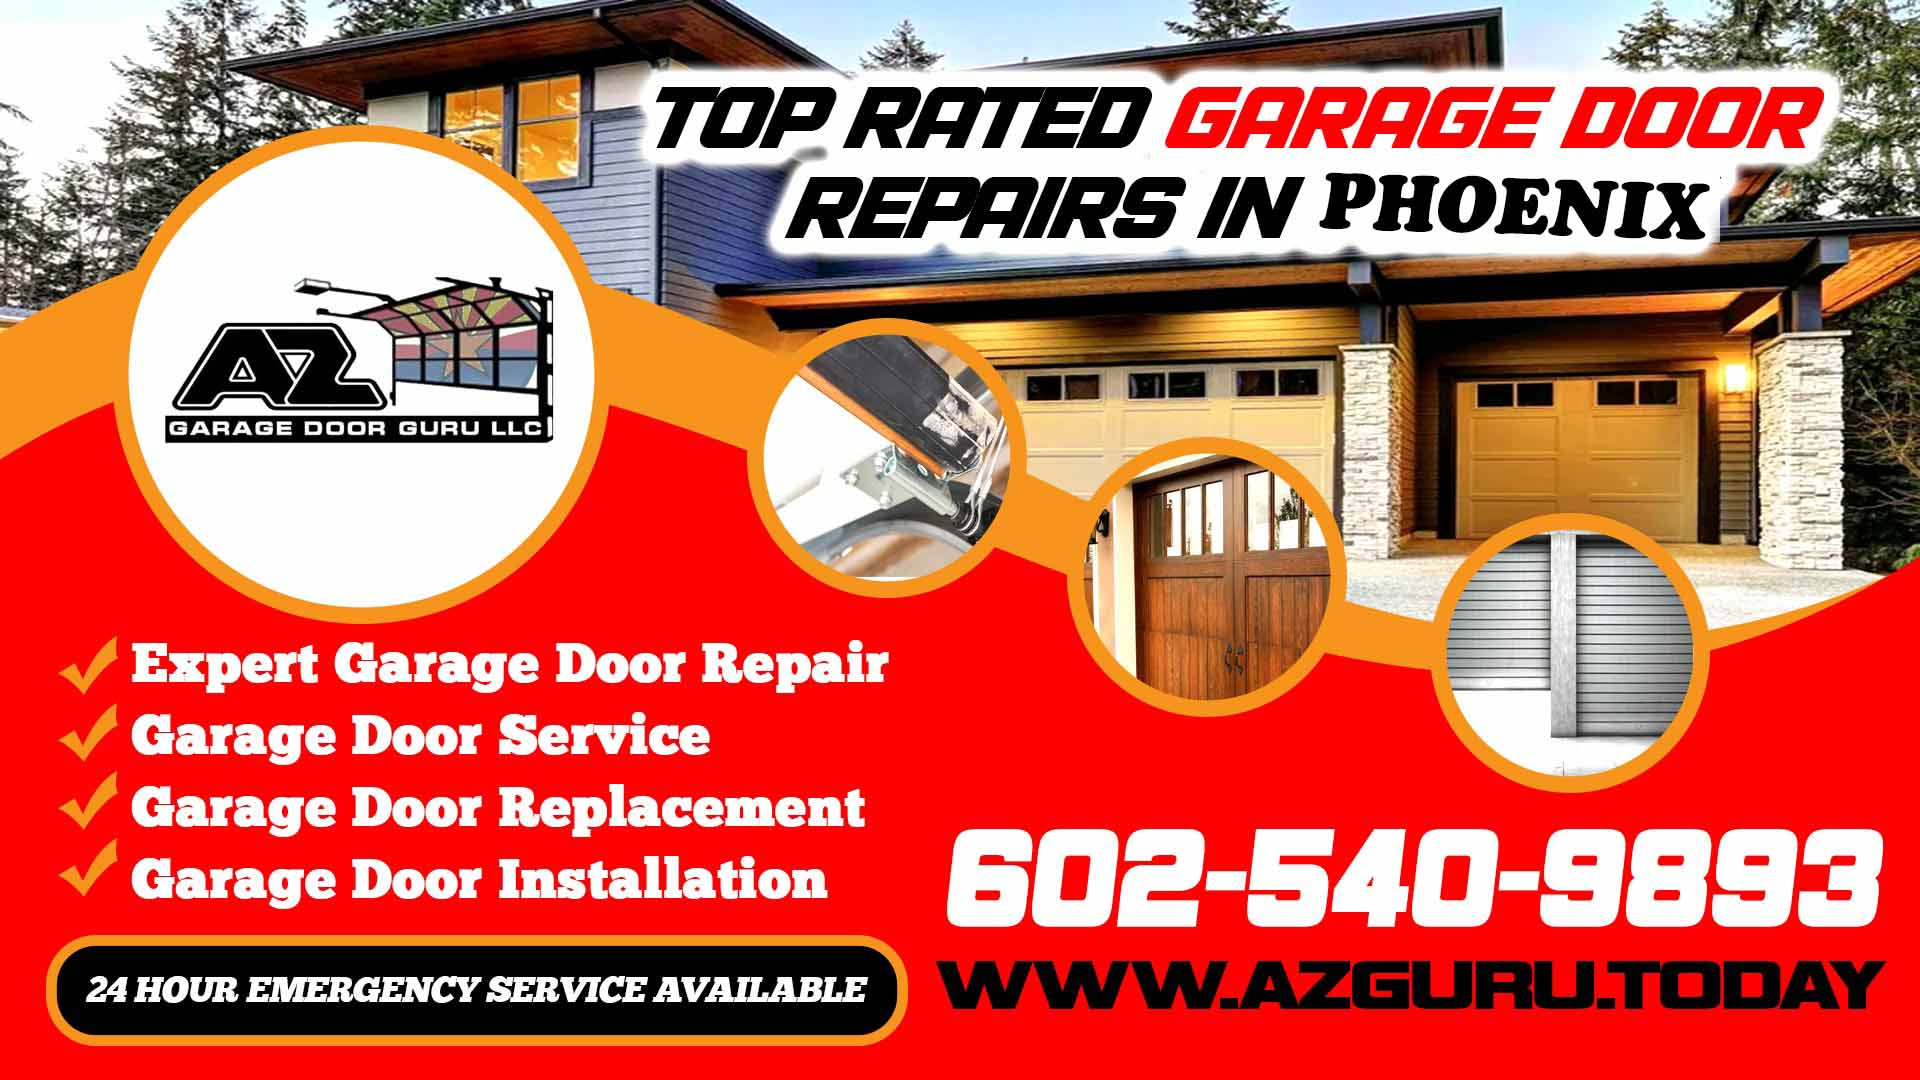 Expert Garage Door Repair in Phoenix